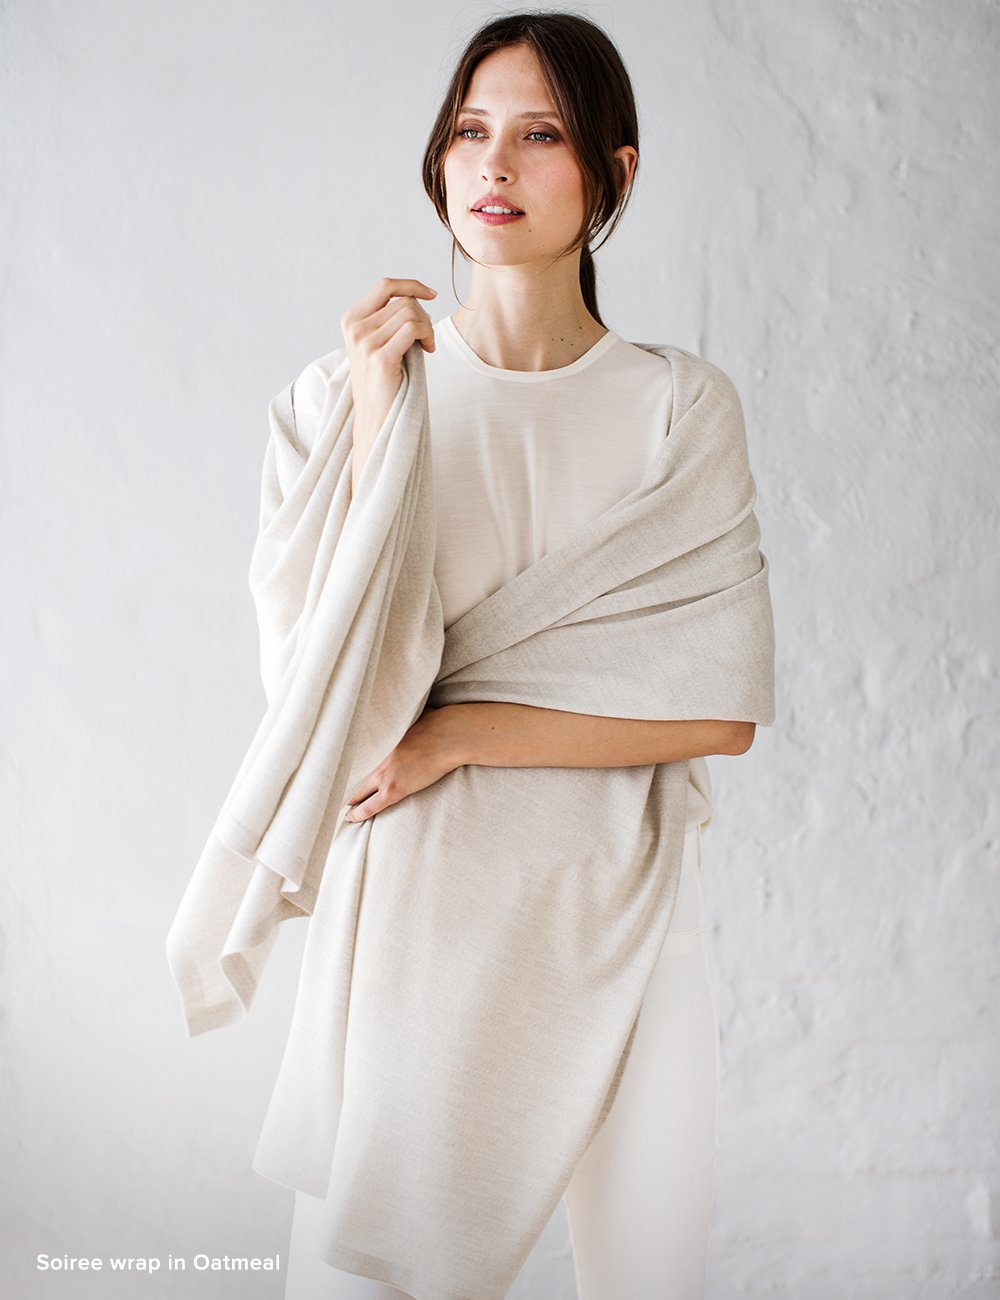 Australian Superfine Merino Wrap Travel Size - Oatmeal